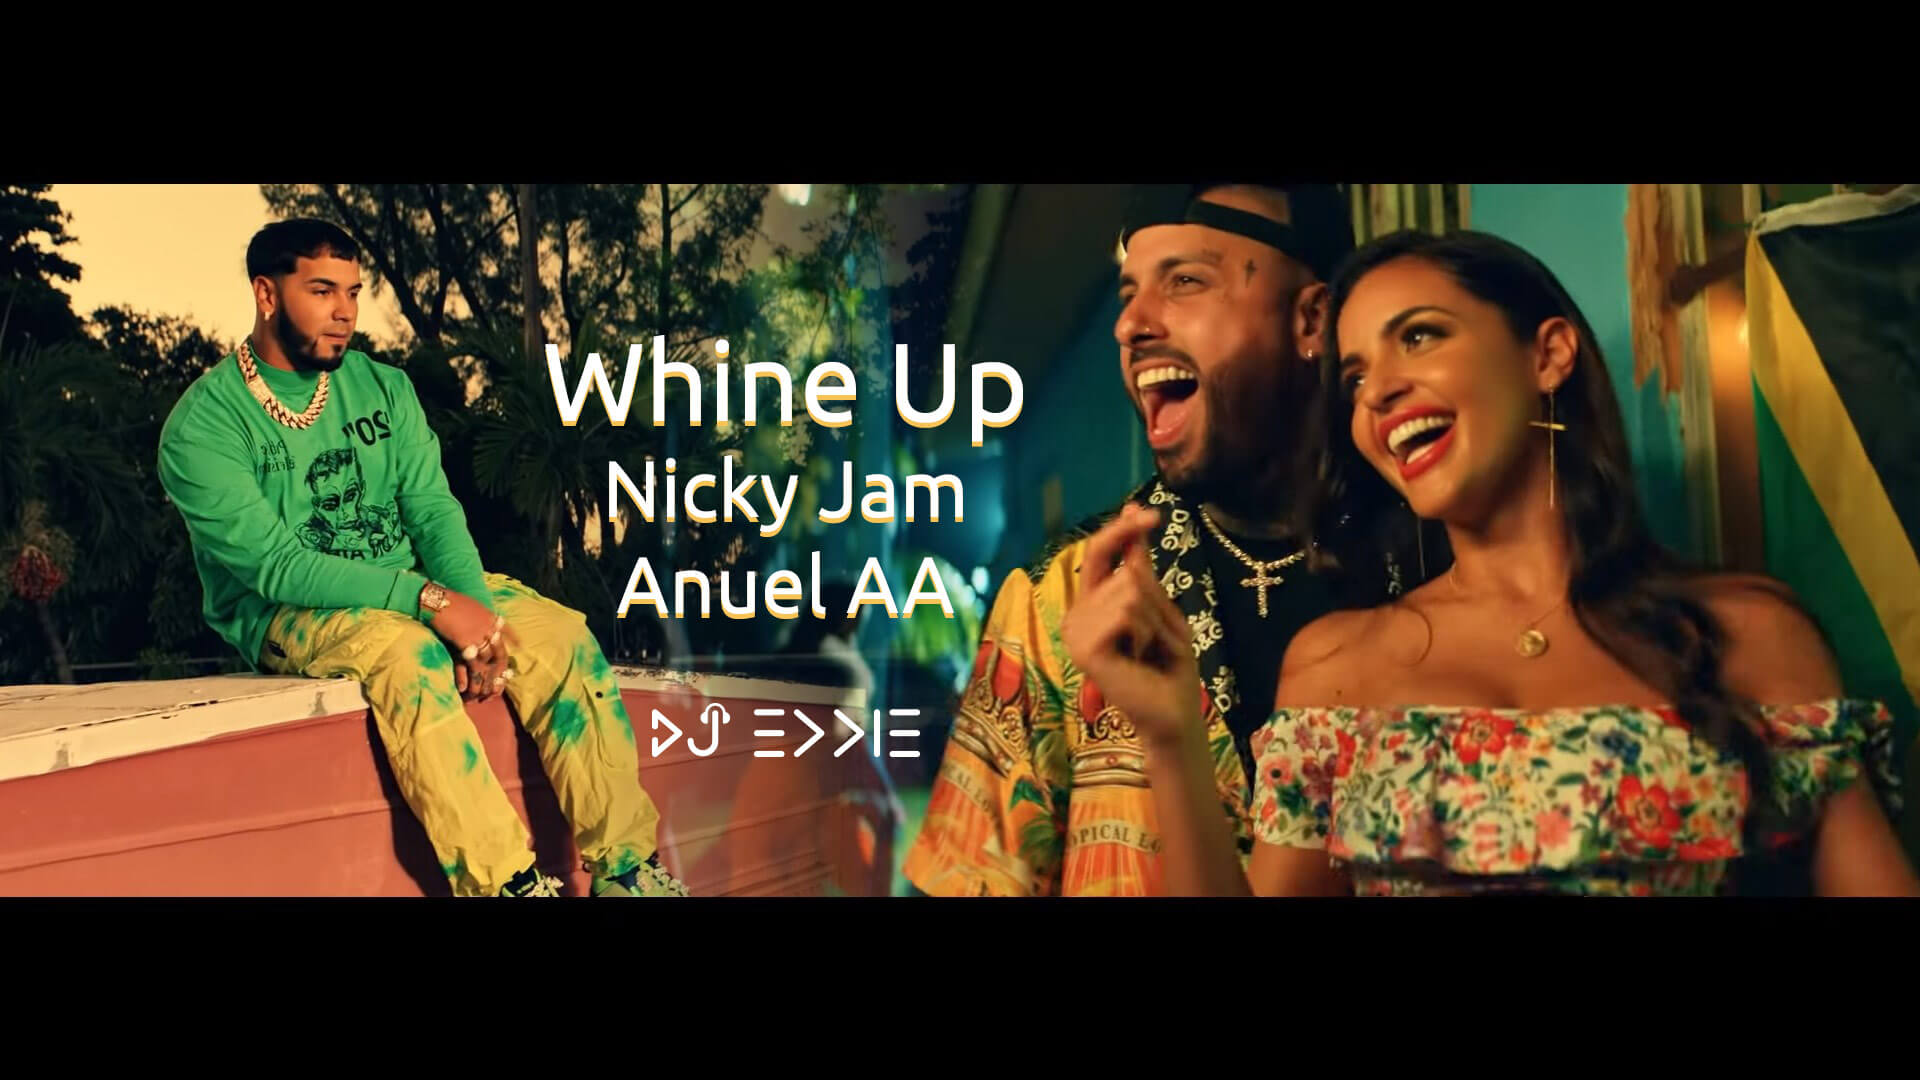 Whine Up - Nicky Jam x Anuel AA